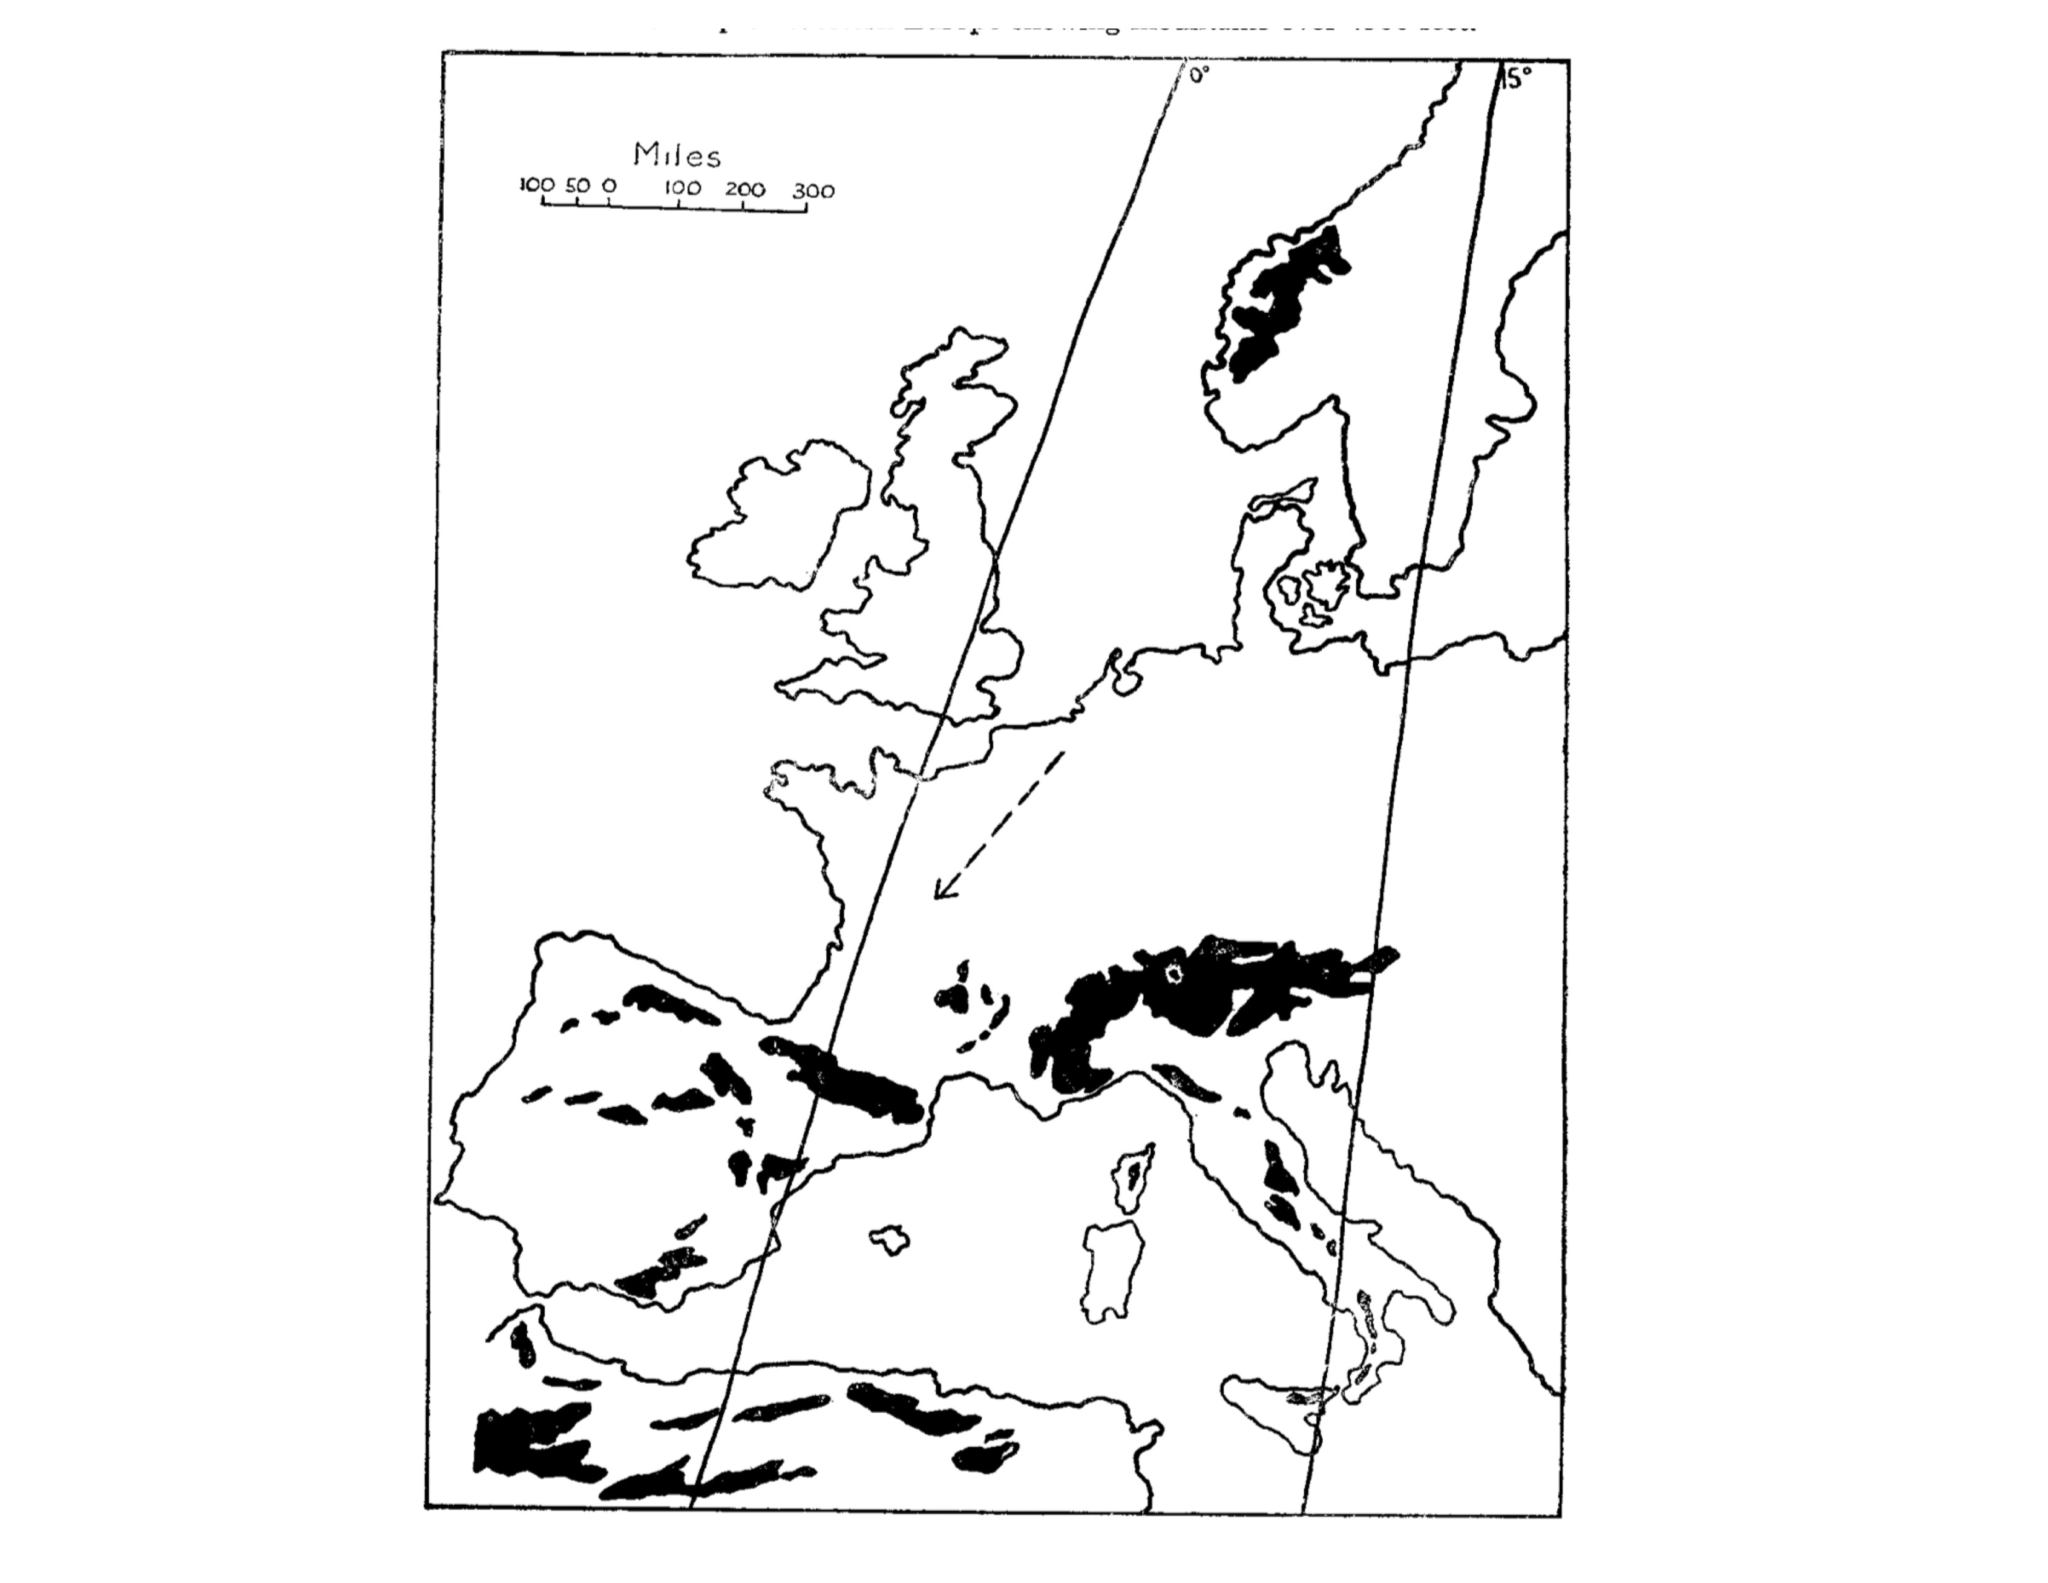 Western_Europe_with_mountains_in_black_from_Lack_and_Lack_1953.png